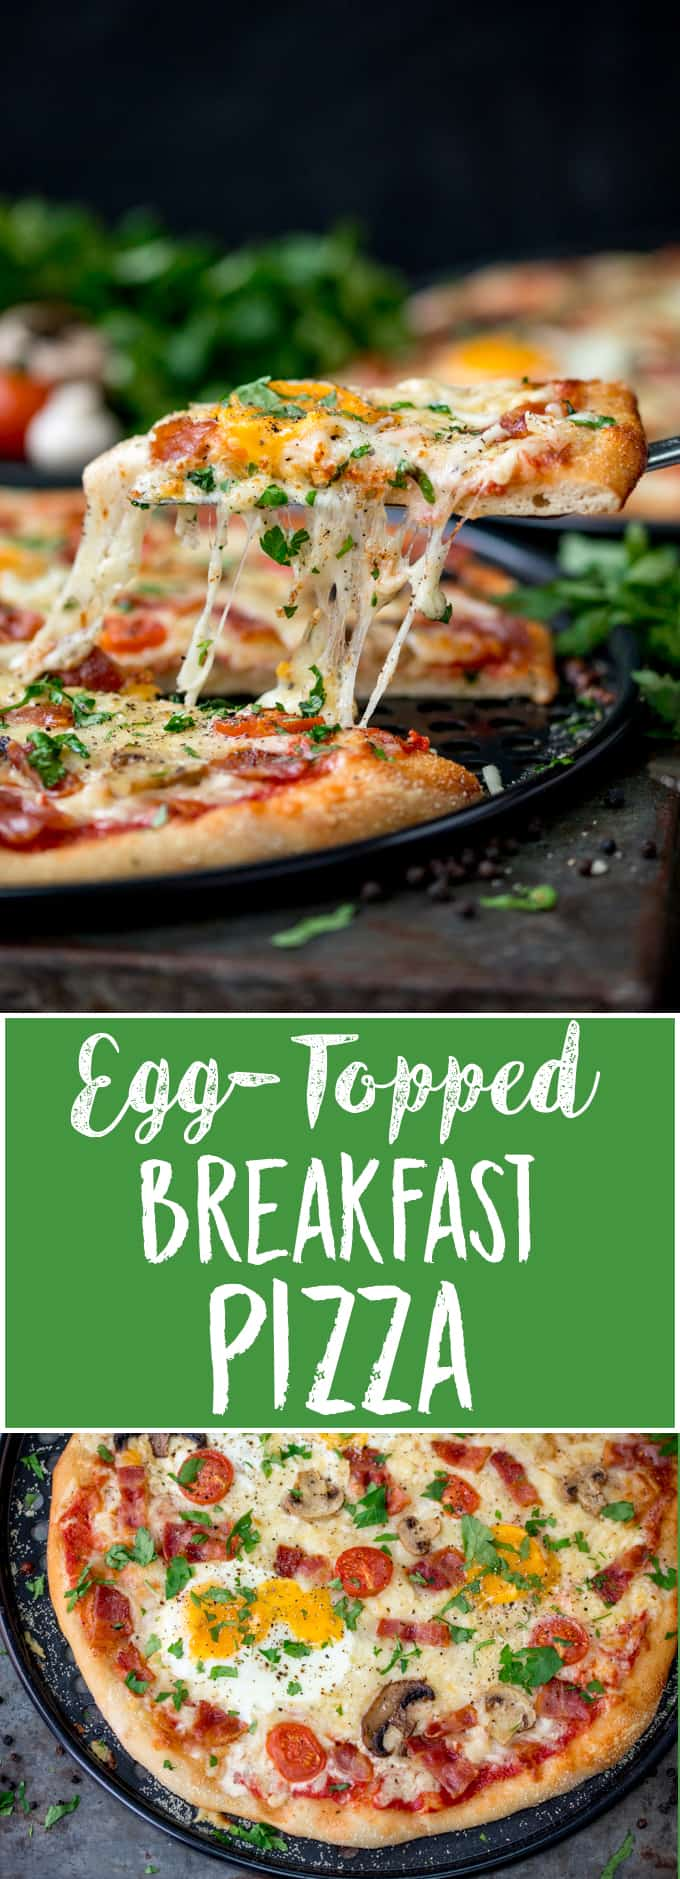 Not just any old pizza - this weekend breakfast pizza comes with the full-English works! Bacon, tomatoes, mushrooms and dippy eggs! A fab breakfast treat! Check out my tips for getting a runny egg yolk to dip those pizza crusts into! #breakfastpizza #weekendbreakfast #eggs #eggpizza #ad